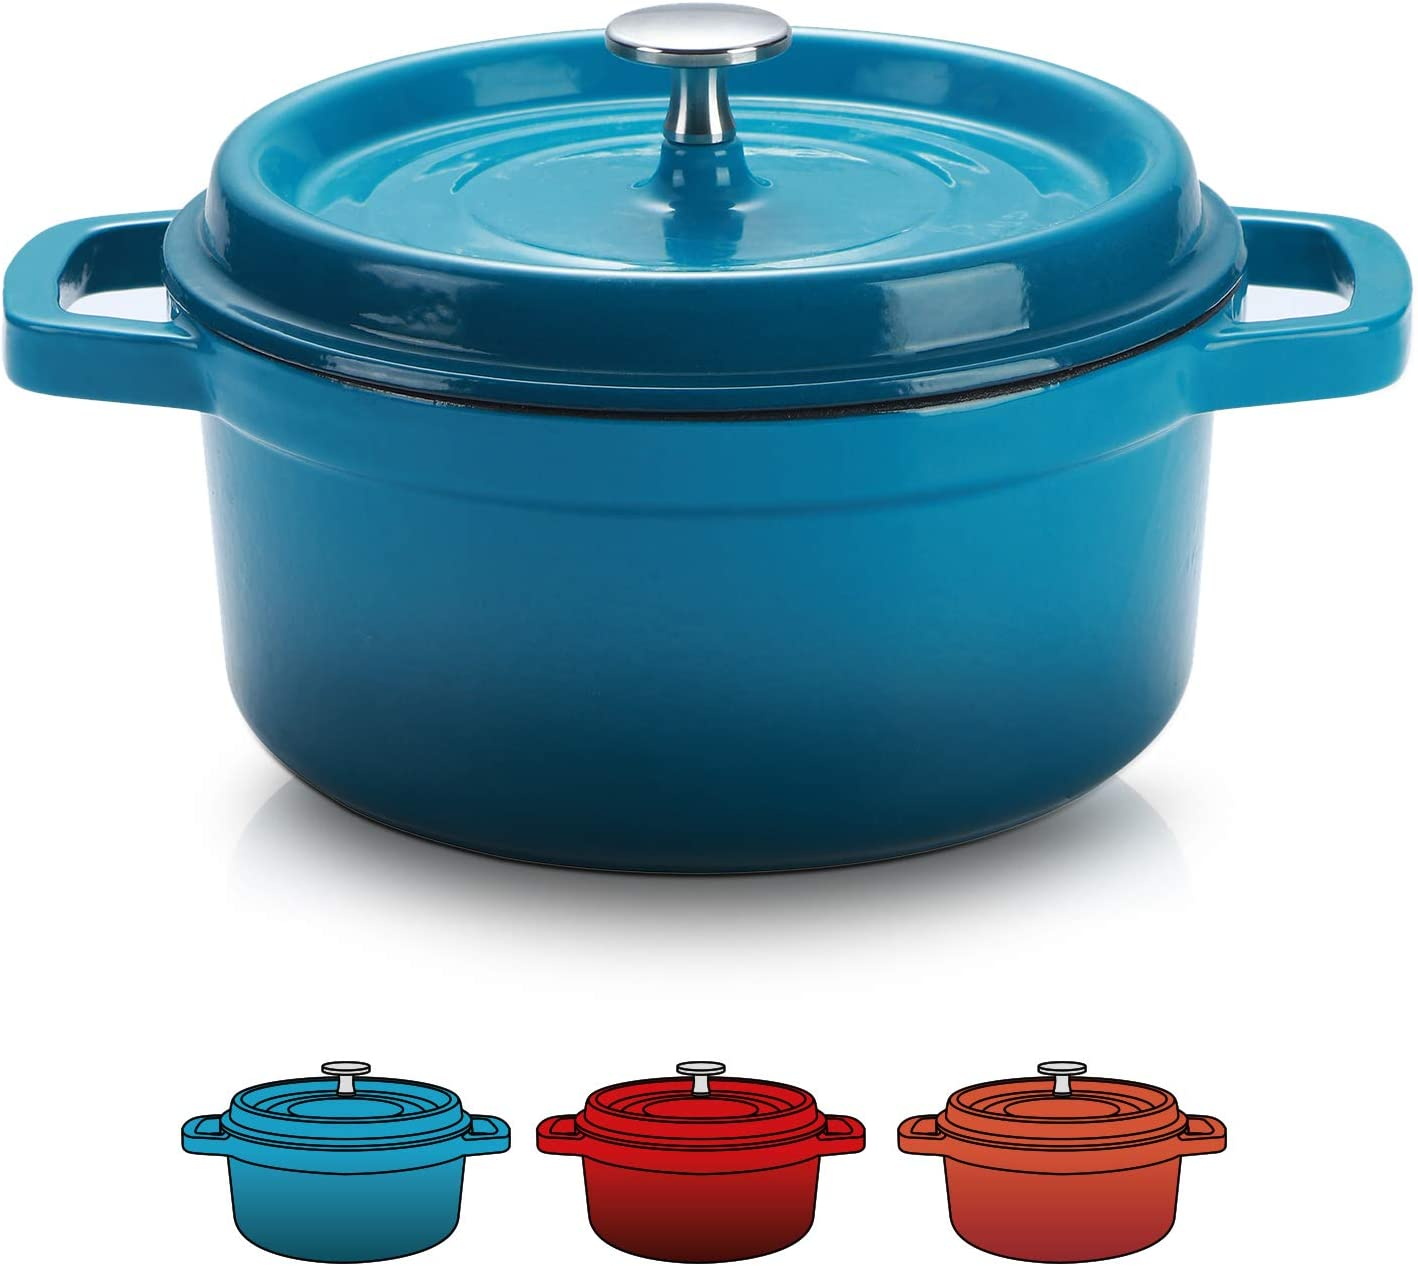 SULIVES Enameled Cast Iron Dutch Oven Non-Stick Cookware Pot with Lid Suitable for Bread Baking Use on Gas Electric Oven 3 Quart, Peacock Blue